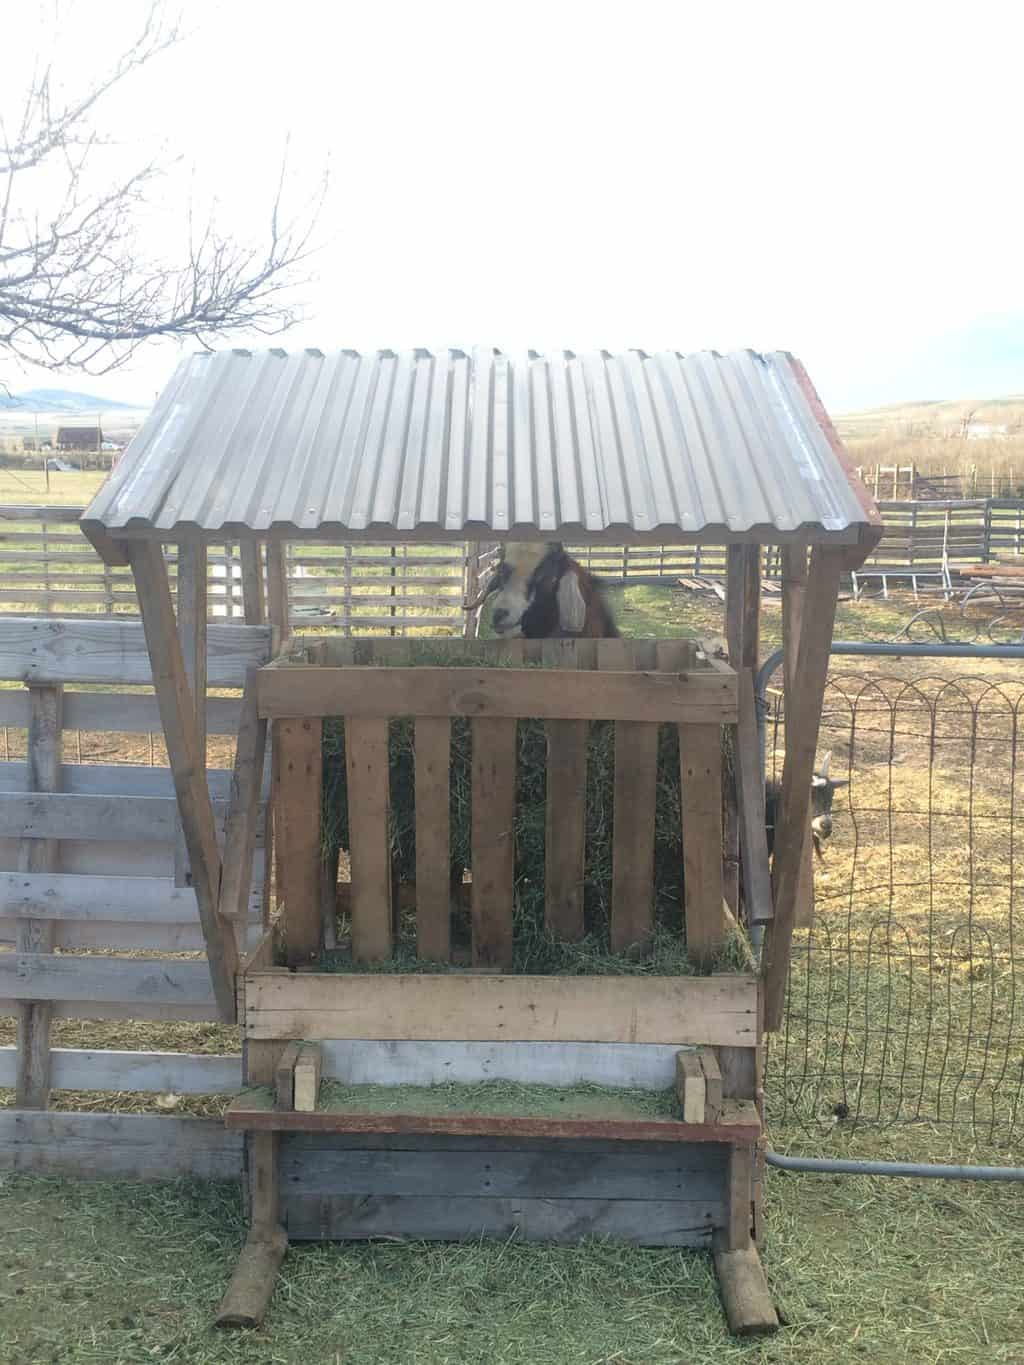 Goat feeder made out of pallets and old wood